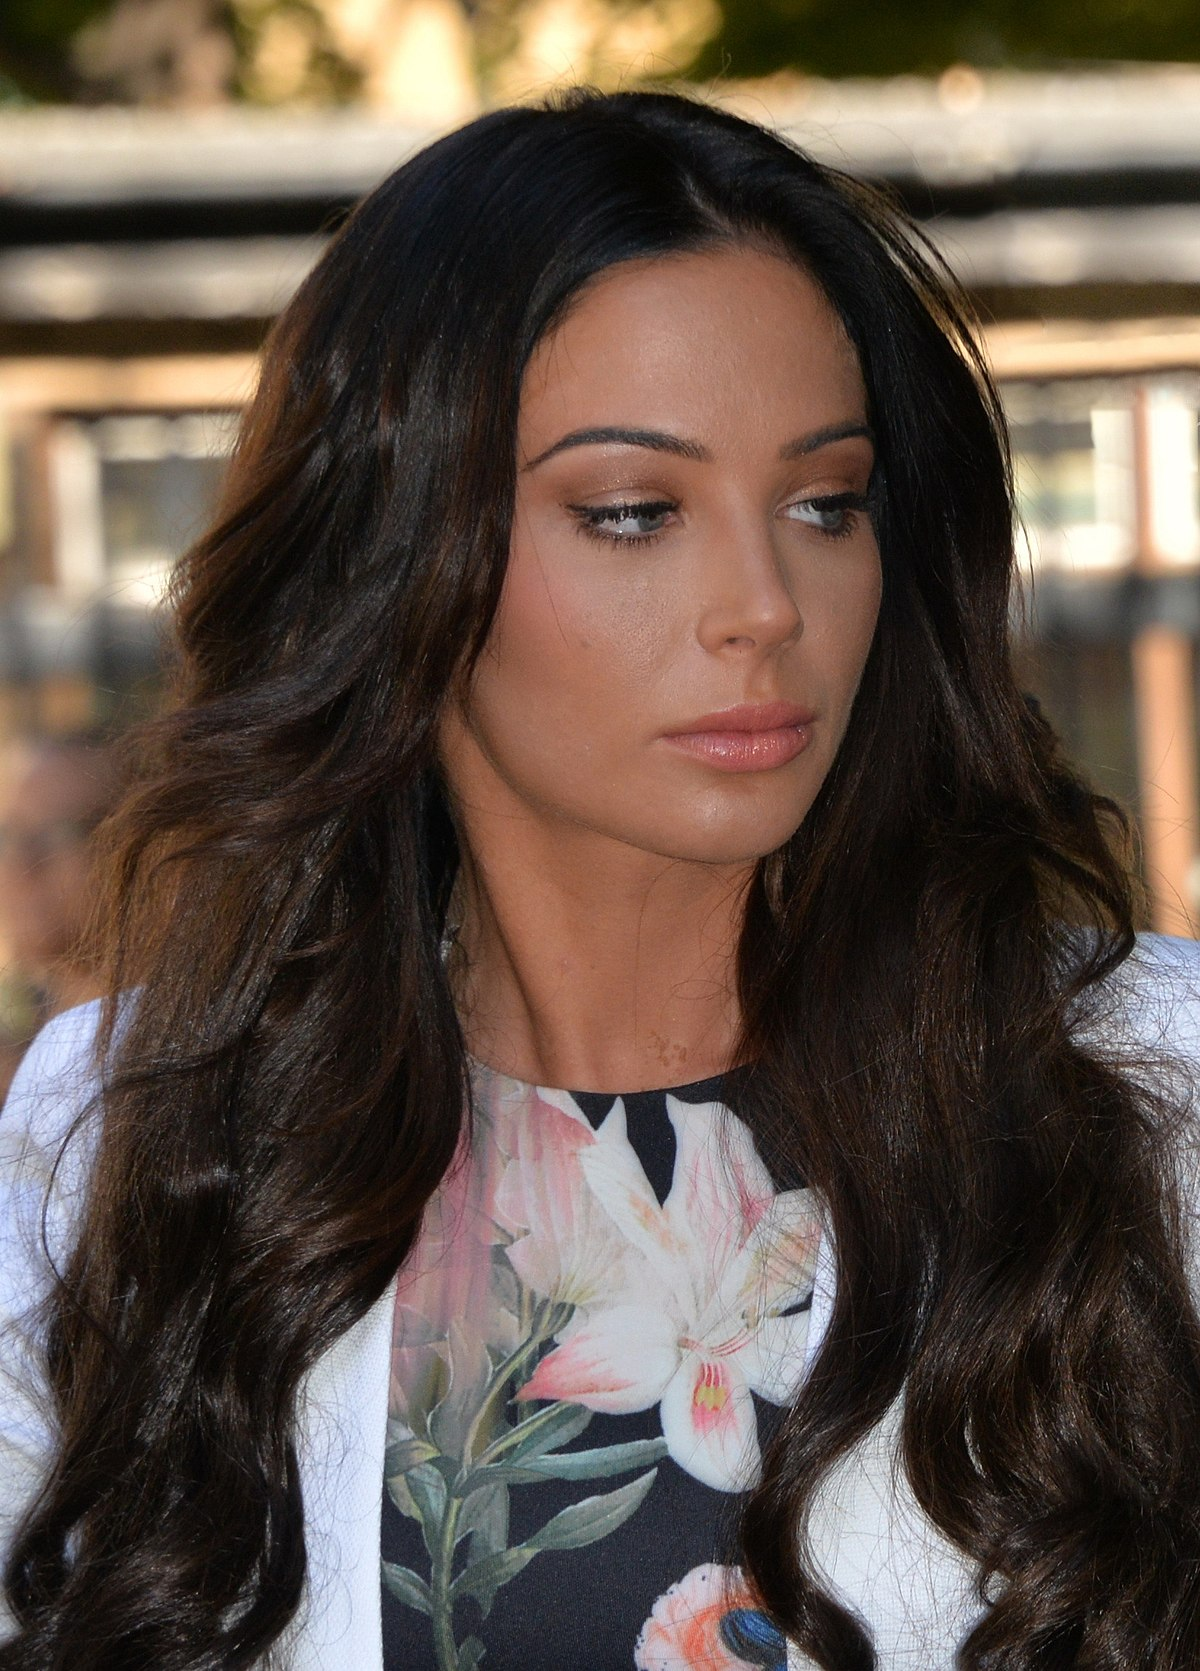 X Factor Judges 2012 Tulisa Tulisa - Wikipedia